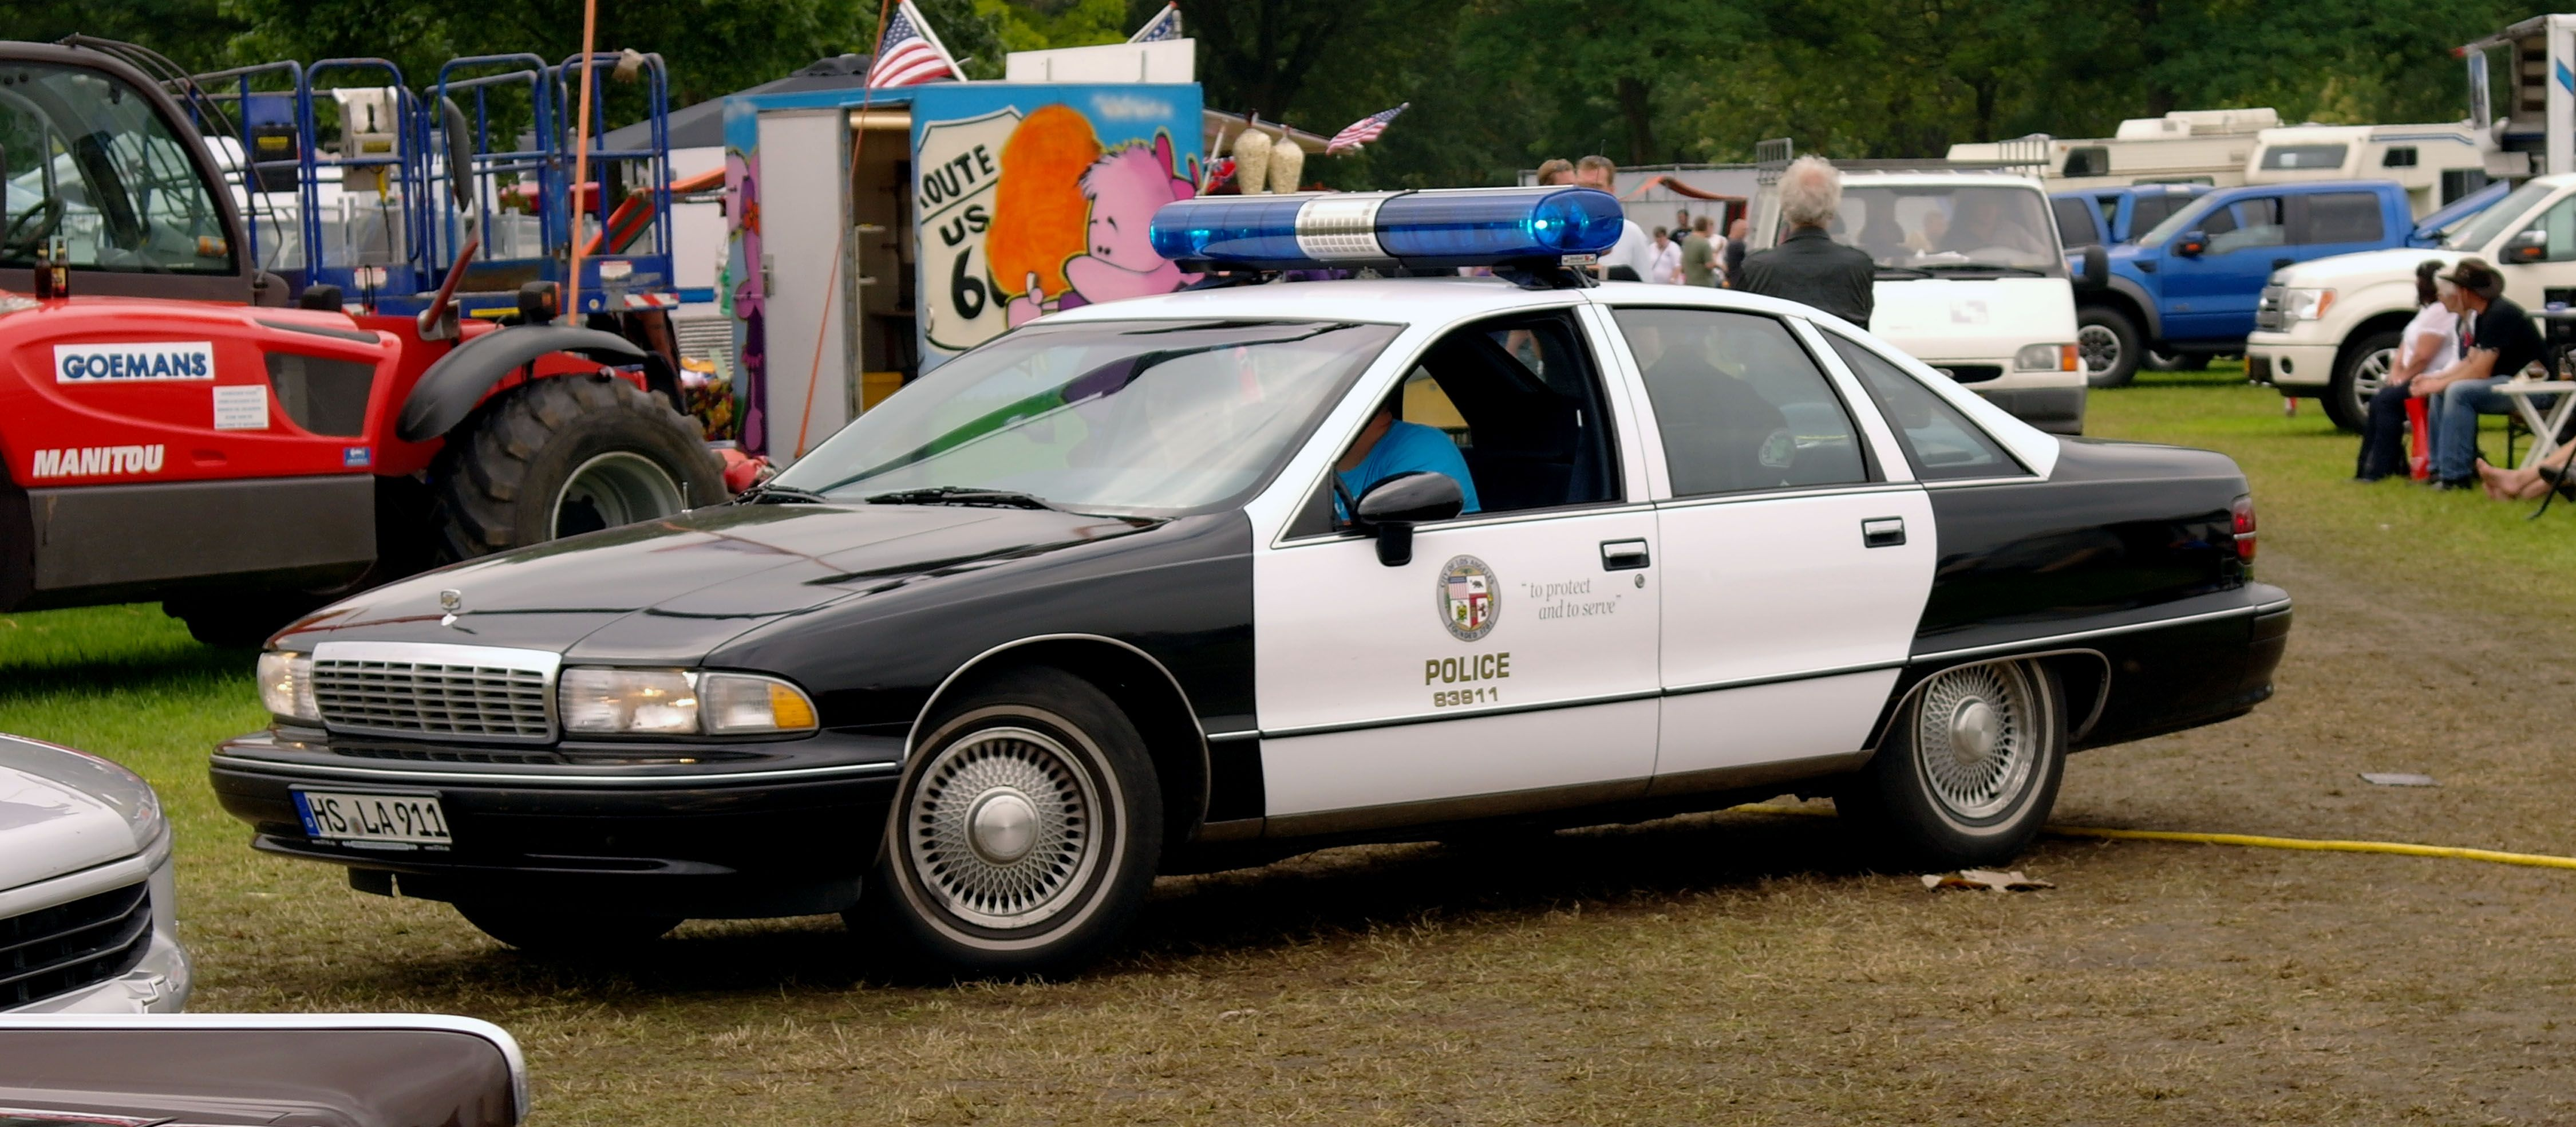 Todos os tamanhos 1991 92 chevrolet caprice 9c1 chevrolet police package from